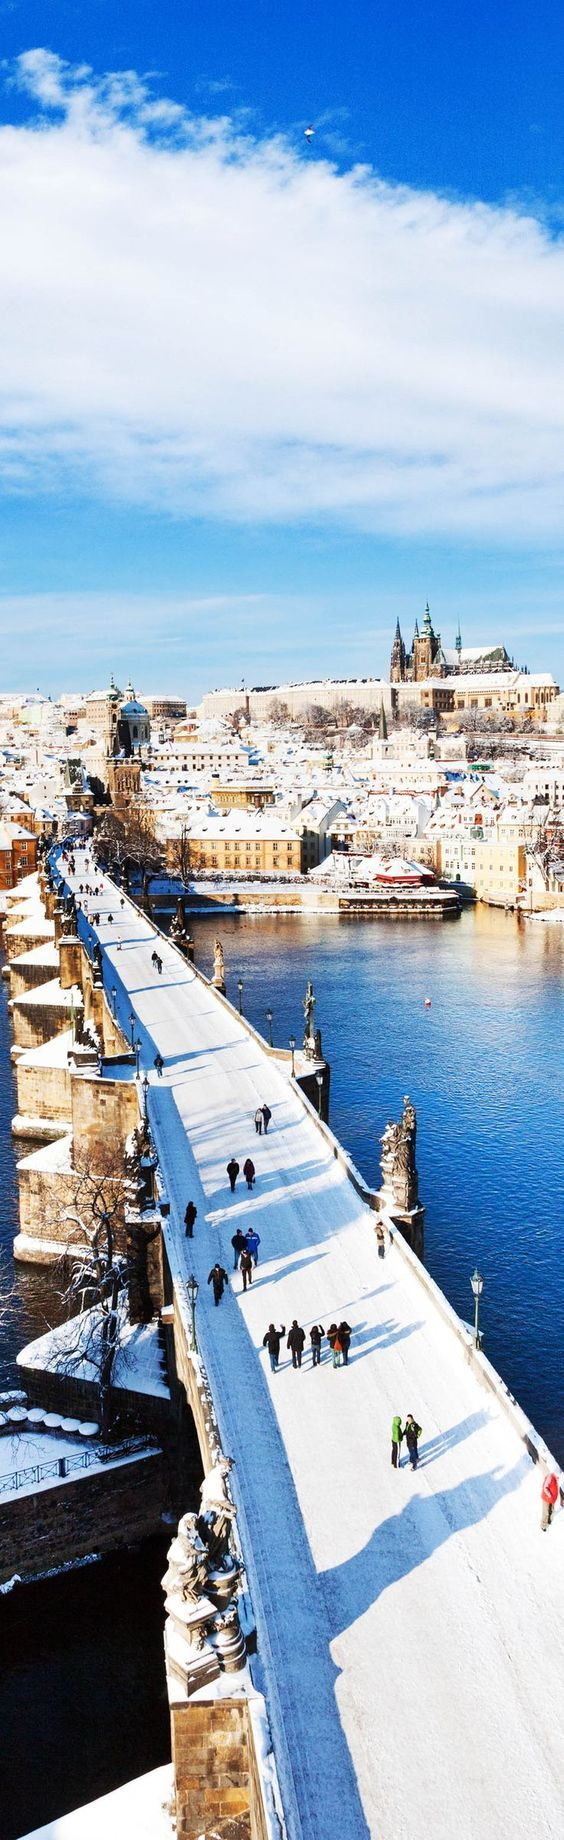 In magical Prague, Czech Republic. Always visit the city once in summer and once in winter. You'll feel like you've visited two places!